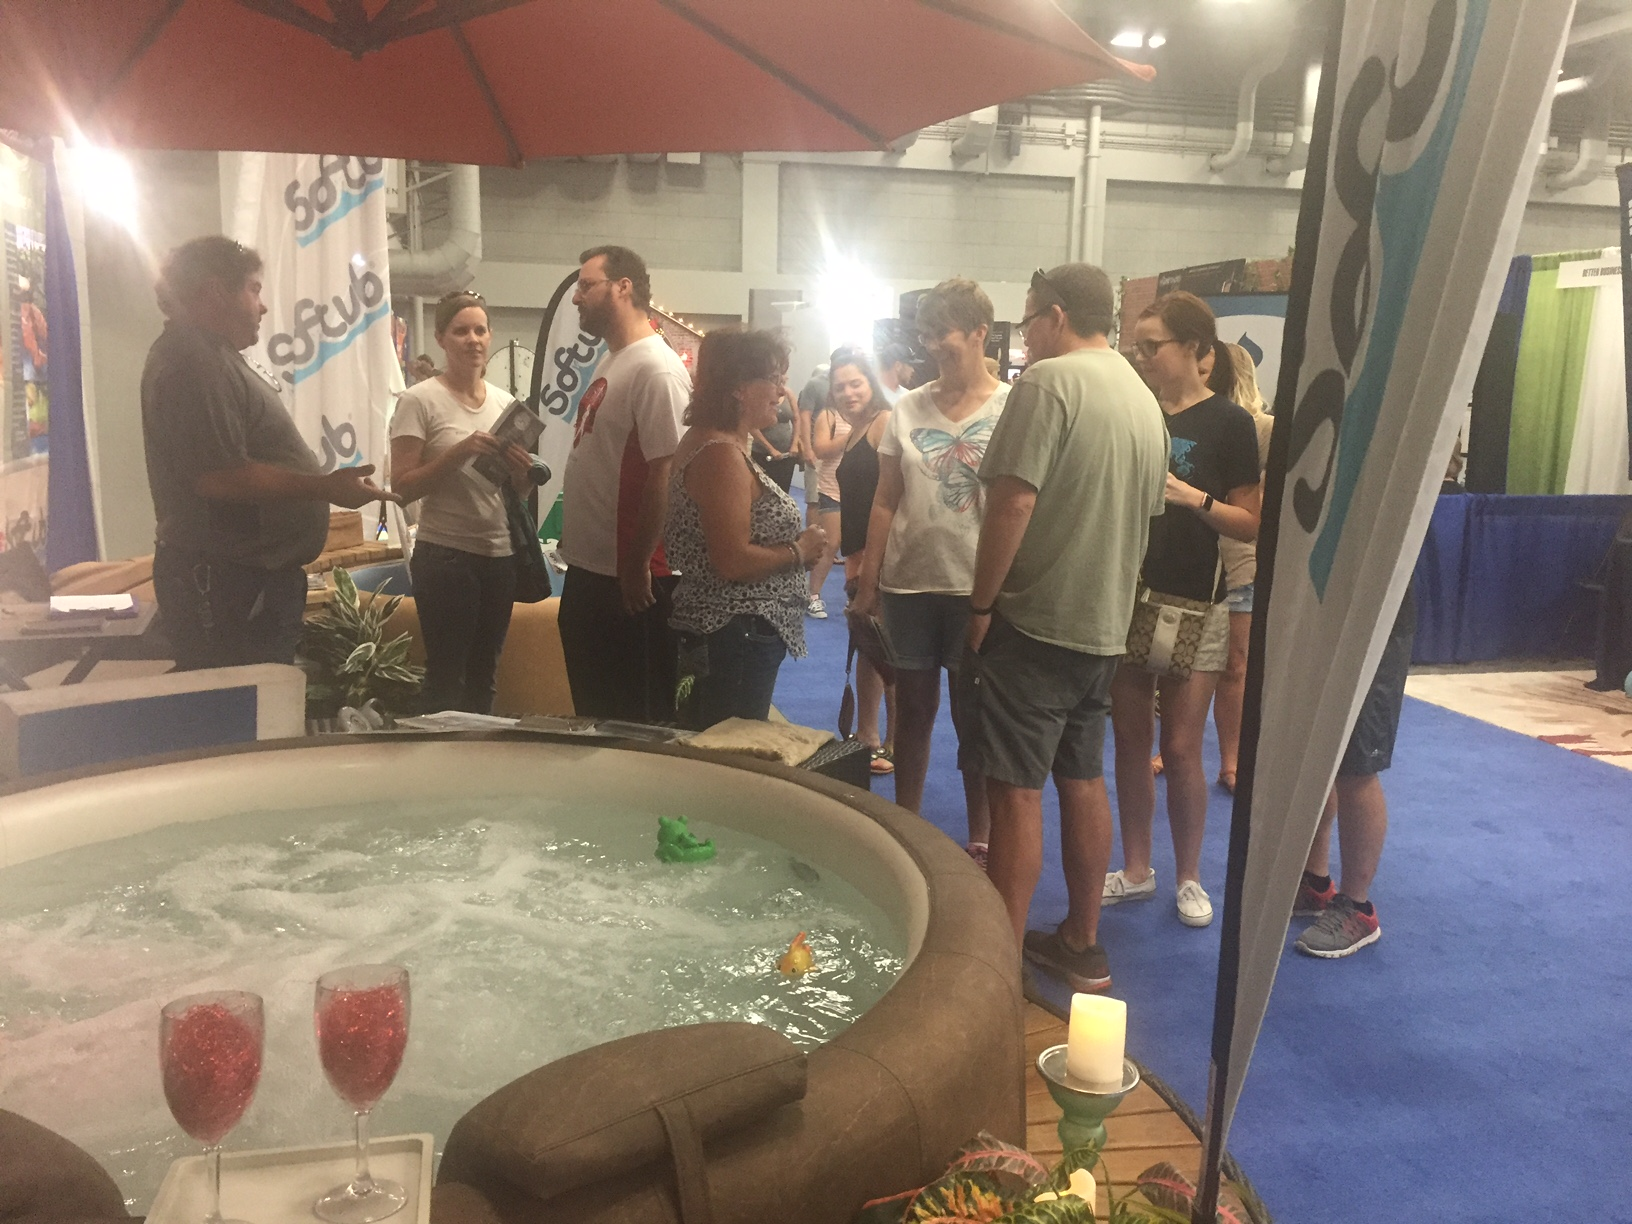 The Austin Convention Center hosted the annual Home and Garden Show Sunday, August 28, 2016._340478